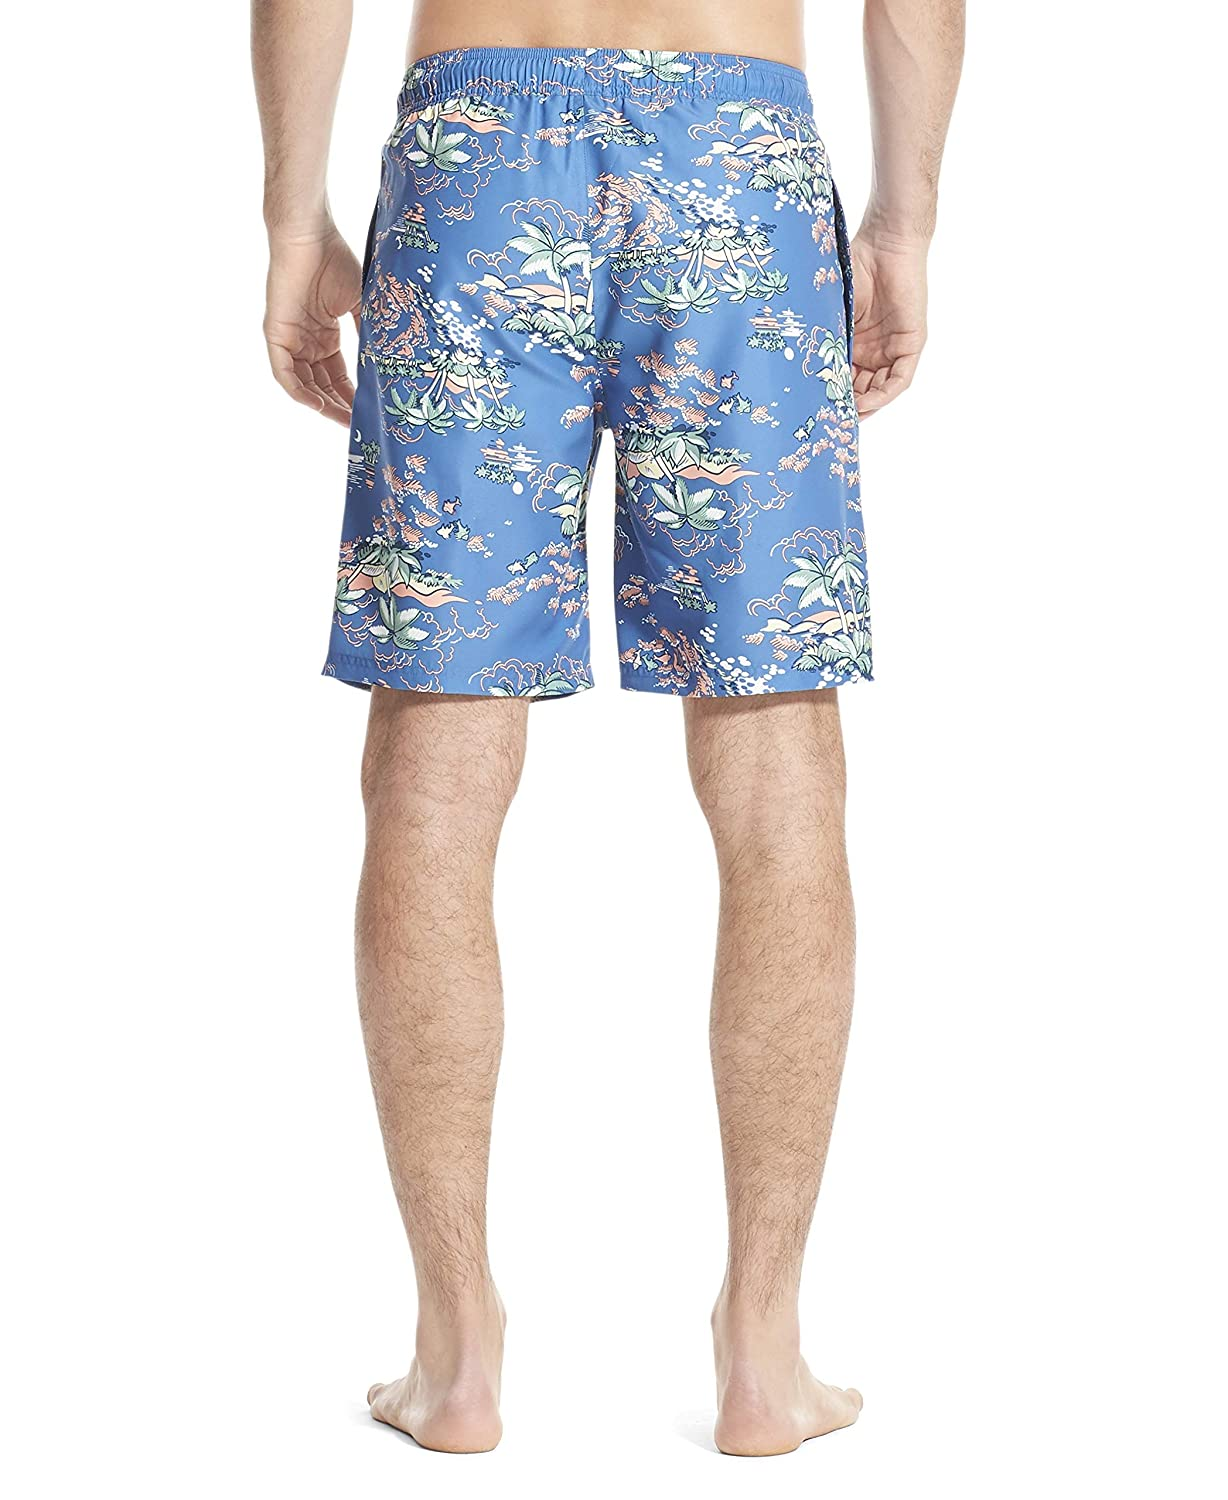 IZOD Mens Printed Swim Trunks with Mesh Lining